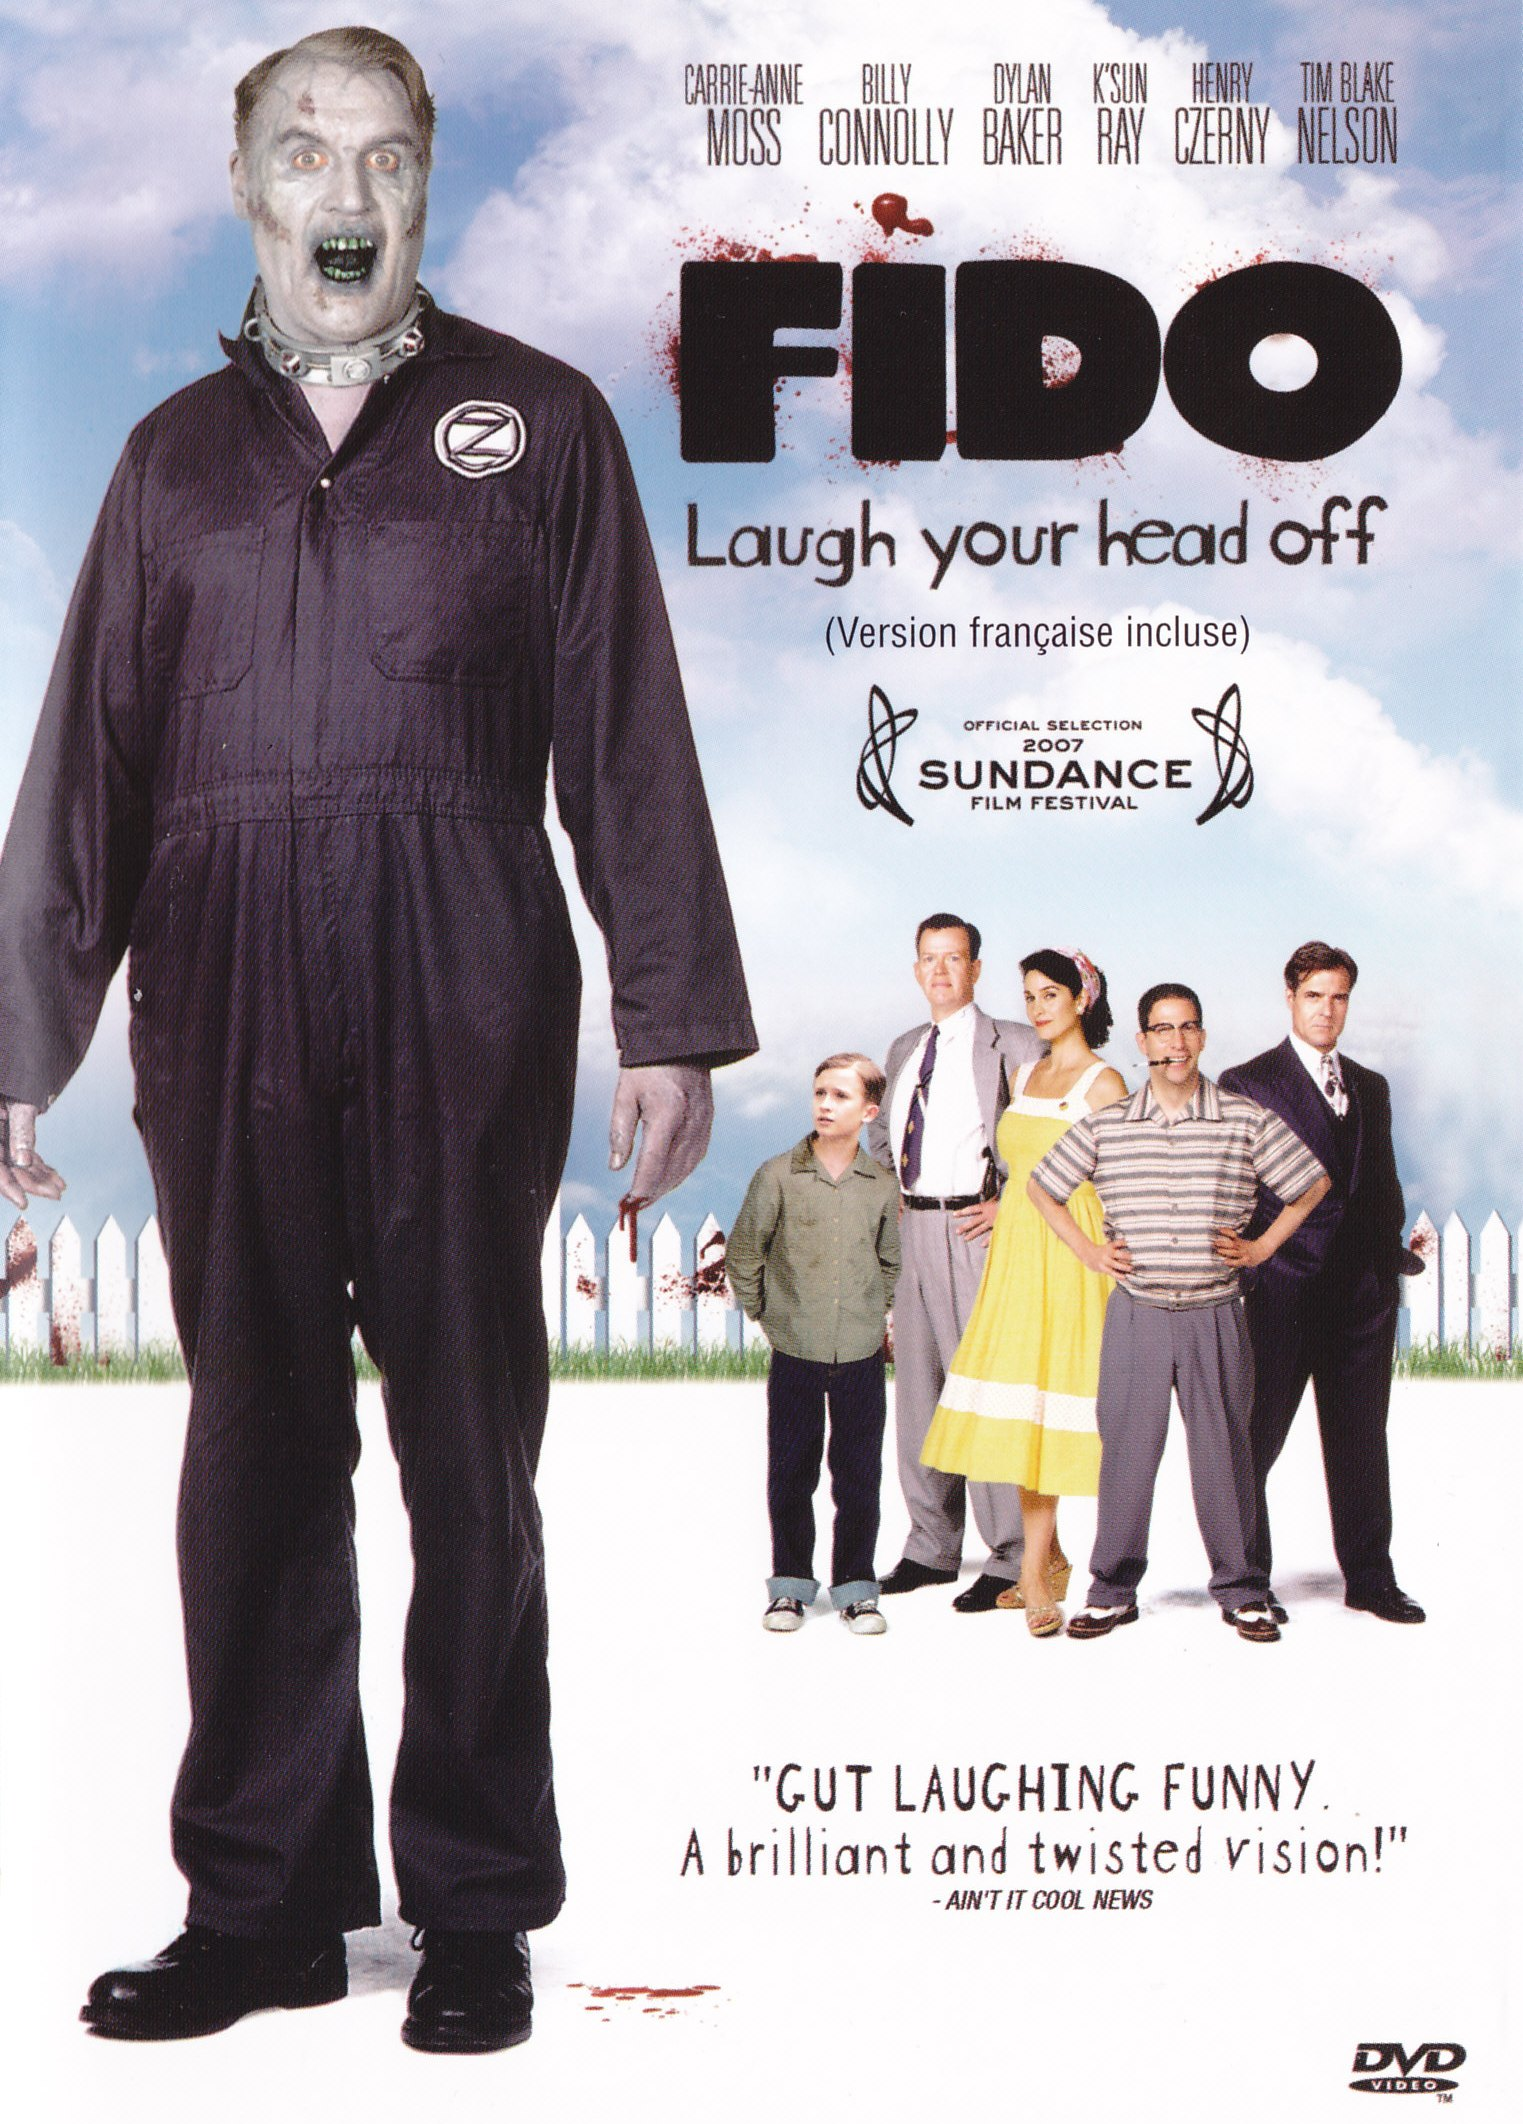 an analysis of the zombie film fido 26-6-2017 google home, which is now available in canada, amounts to analysis movie fido essay a slightly more capable analysis movie fido essay and much better-looking version of amazon's echo fights anti-catholicism and is the us's largest catholic defense dissertation qualitative.